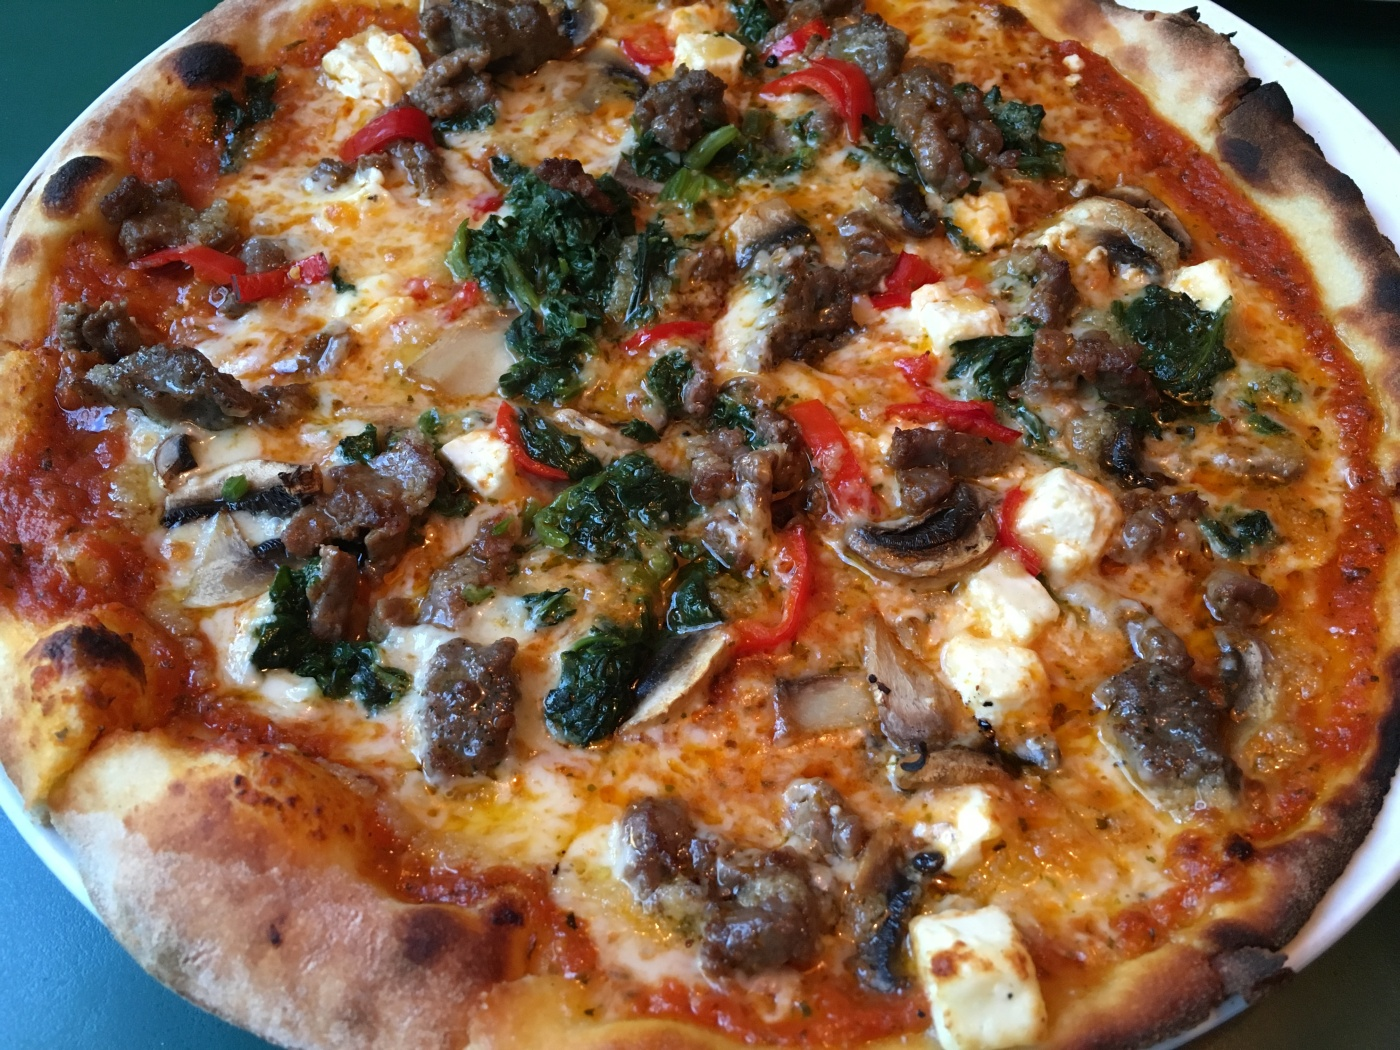 "#17 the ""HK Special"" Pizza - Steak, Meatballs, Spinach, Feta, Mushrooms, Garlic and Chili at Hell's Kitchen in Oslo, Norway"